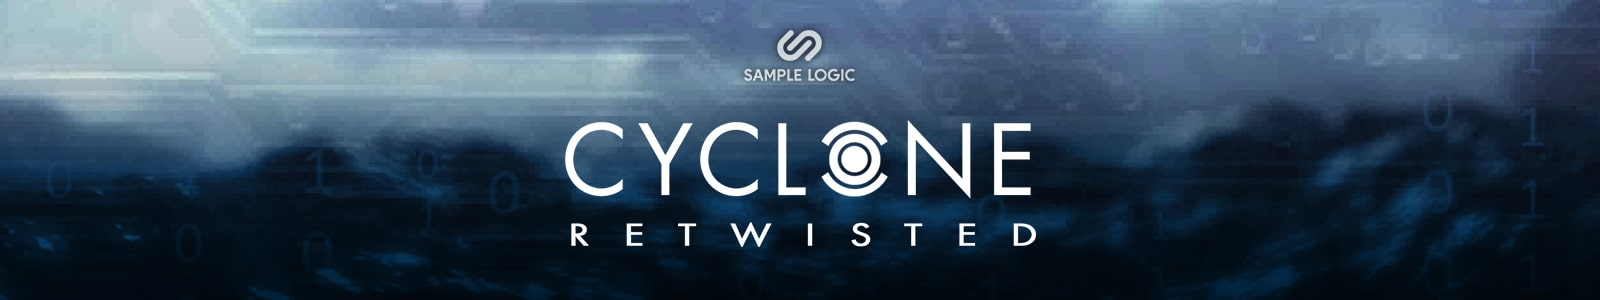 cyclone retwisted by sample logic